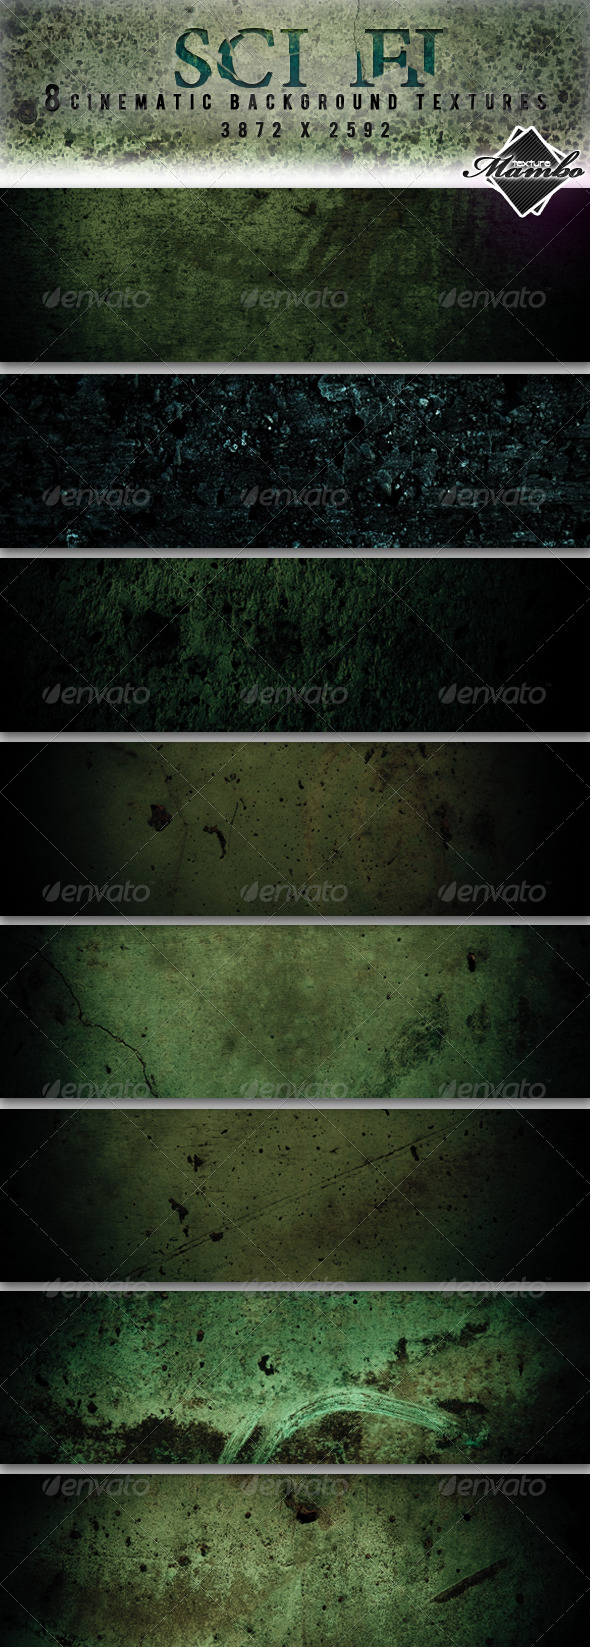 Sci Fi - Cinematic background textures - Industrial / Grunge Textures